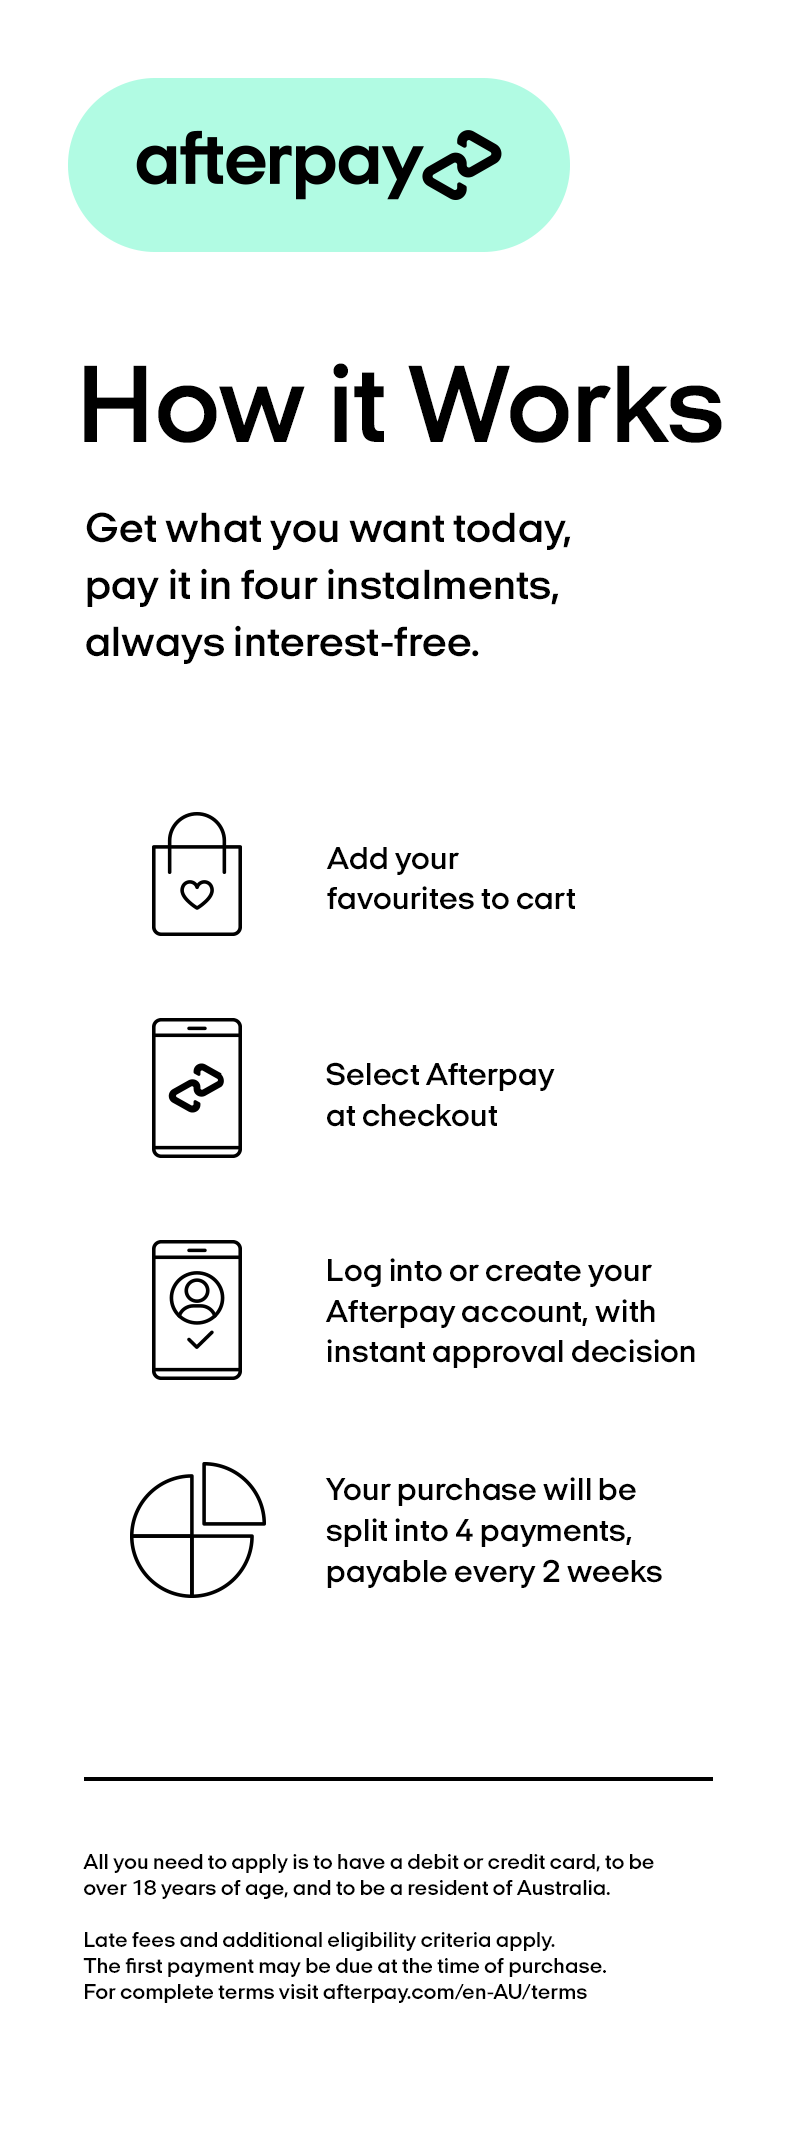 Afterpay Marketing Banner For Mobile